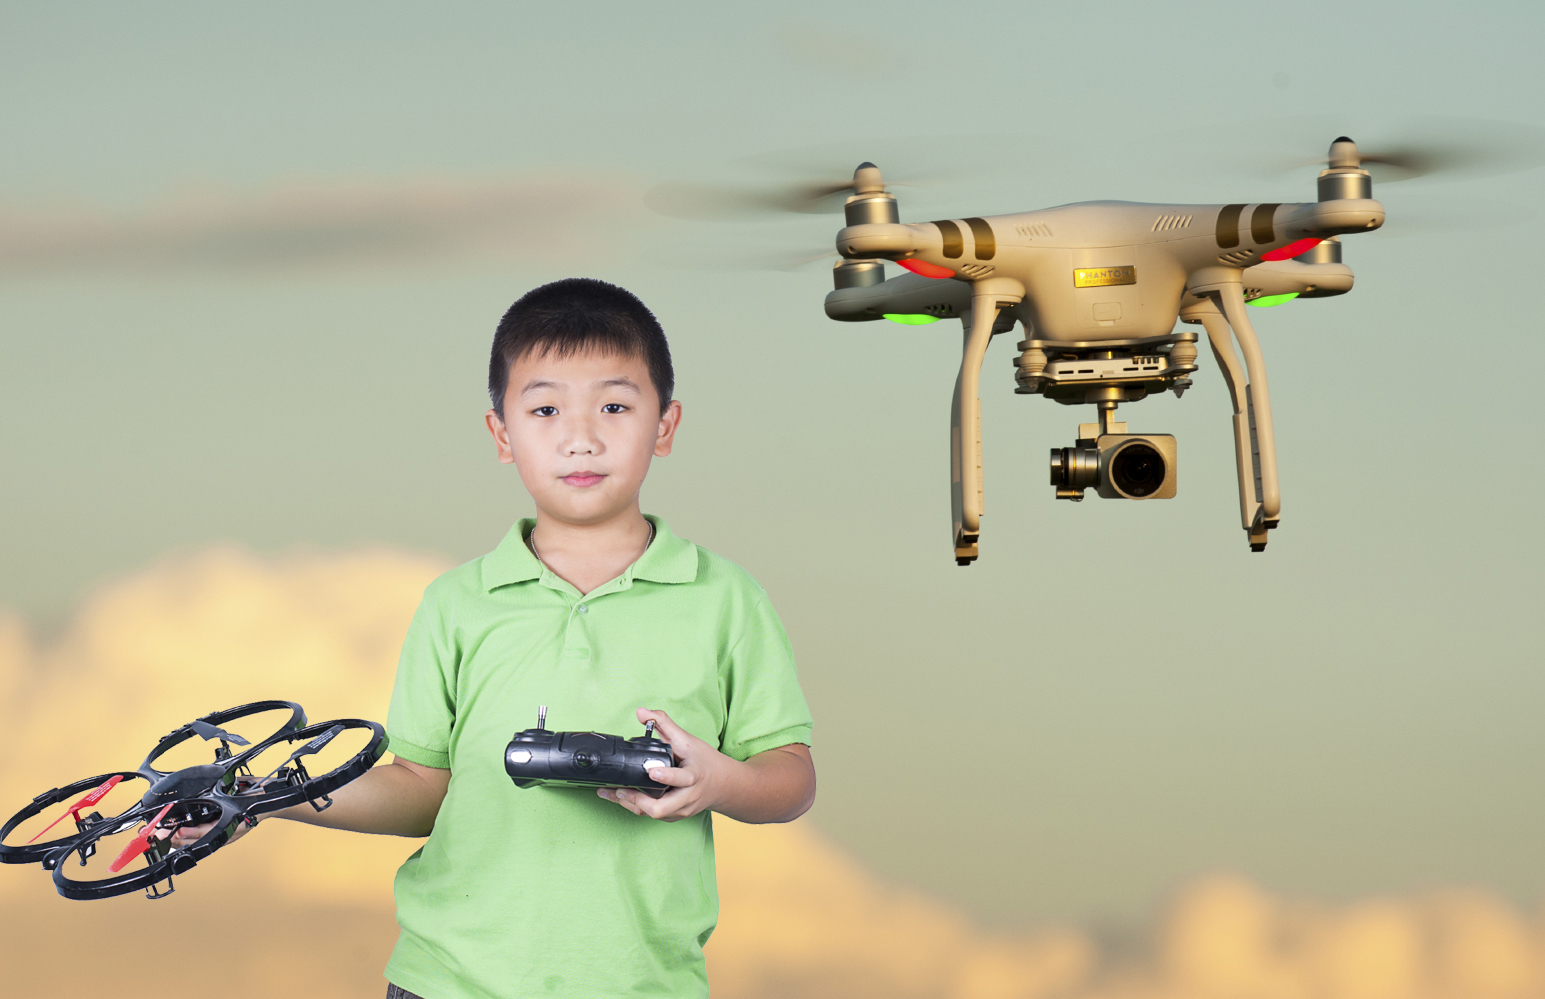 Experts are warning parents against letting children use drones like these (PA)